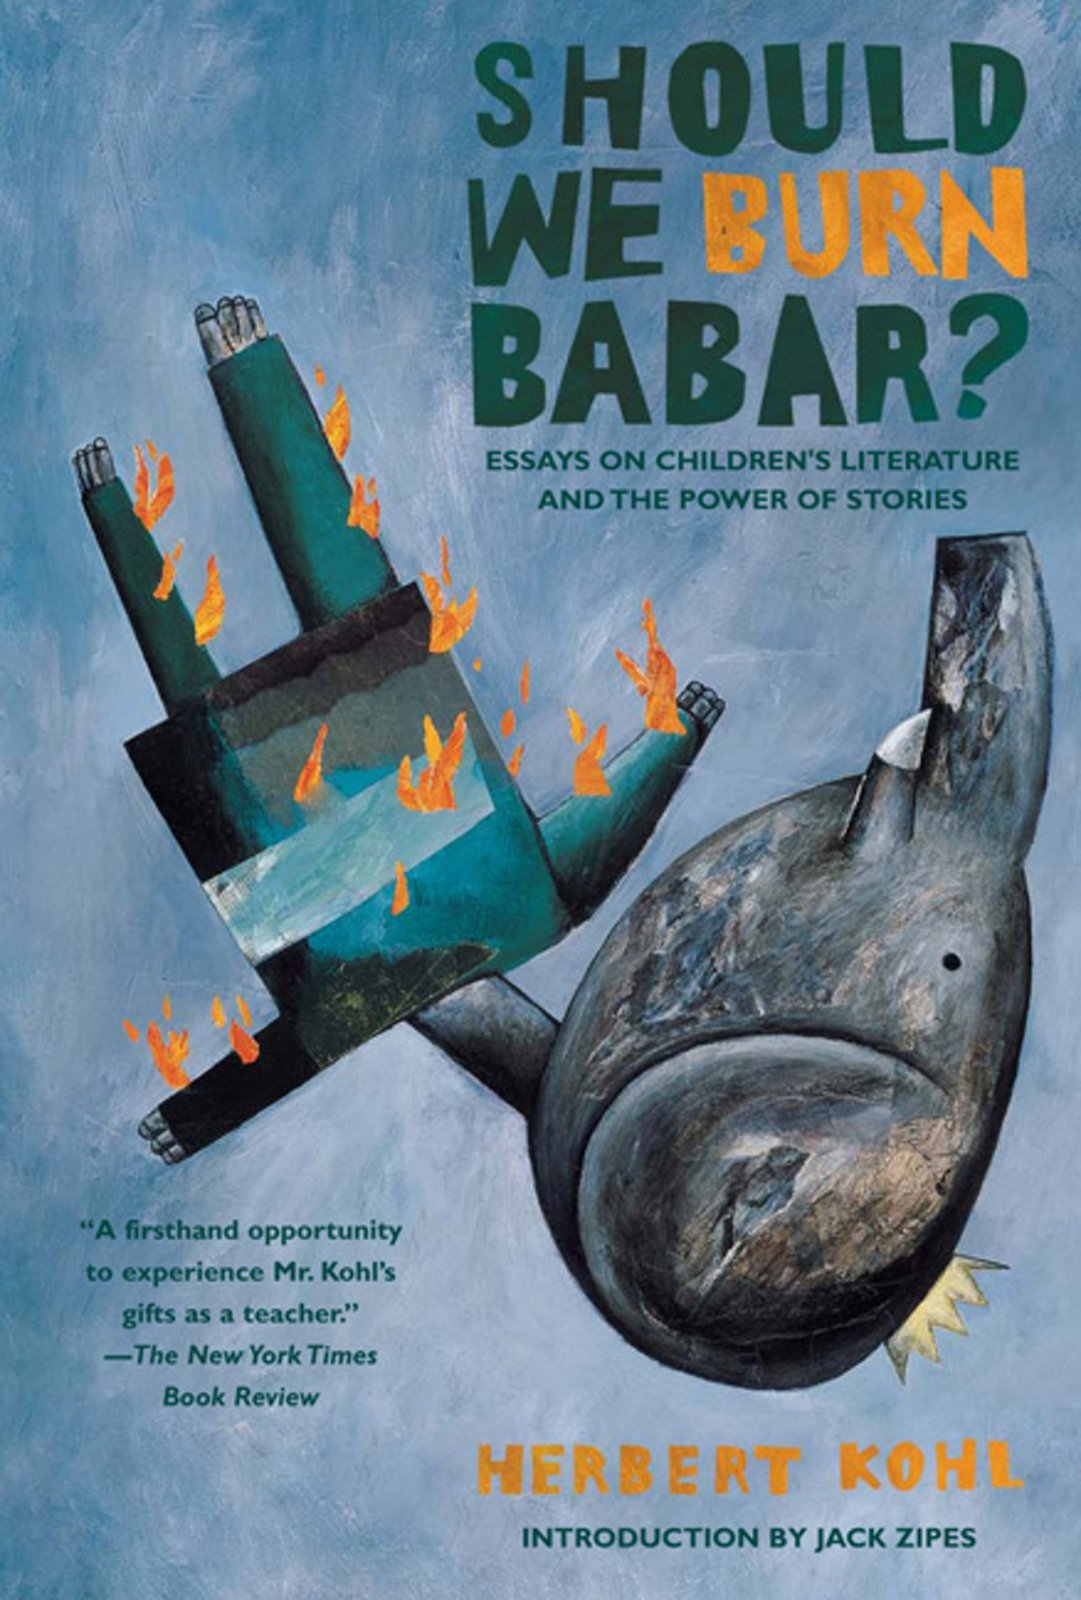 com should we burn babar essays on children s literature essays on children s literature and the power of stories 9781595581303 herbert r kohl jack david zipes books